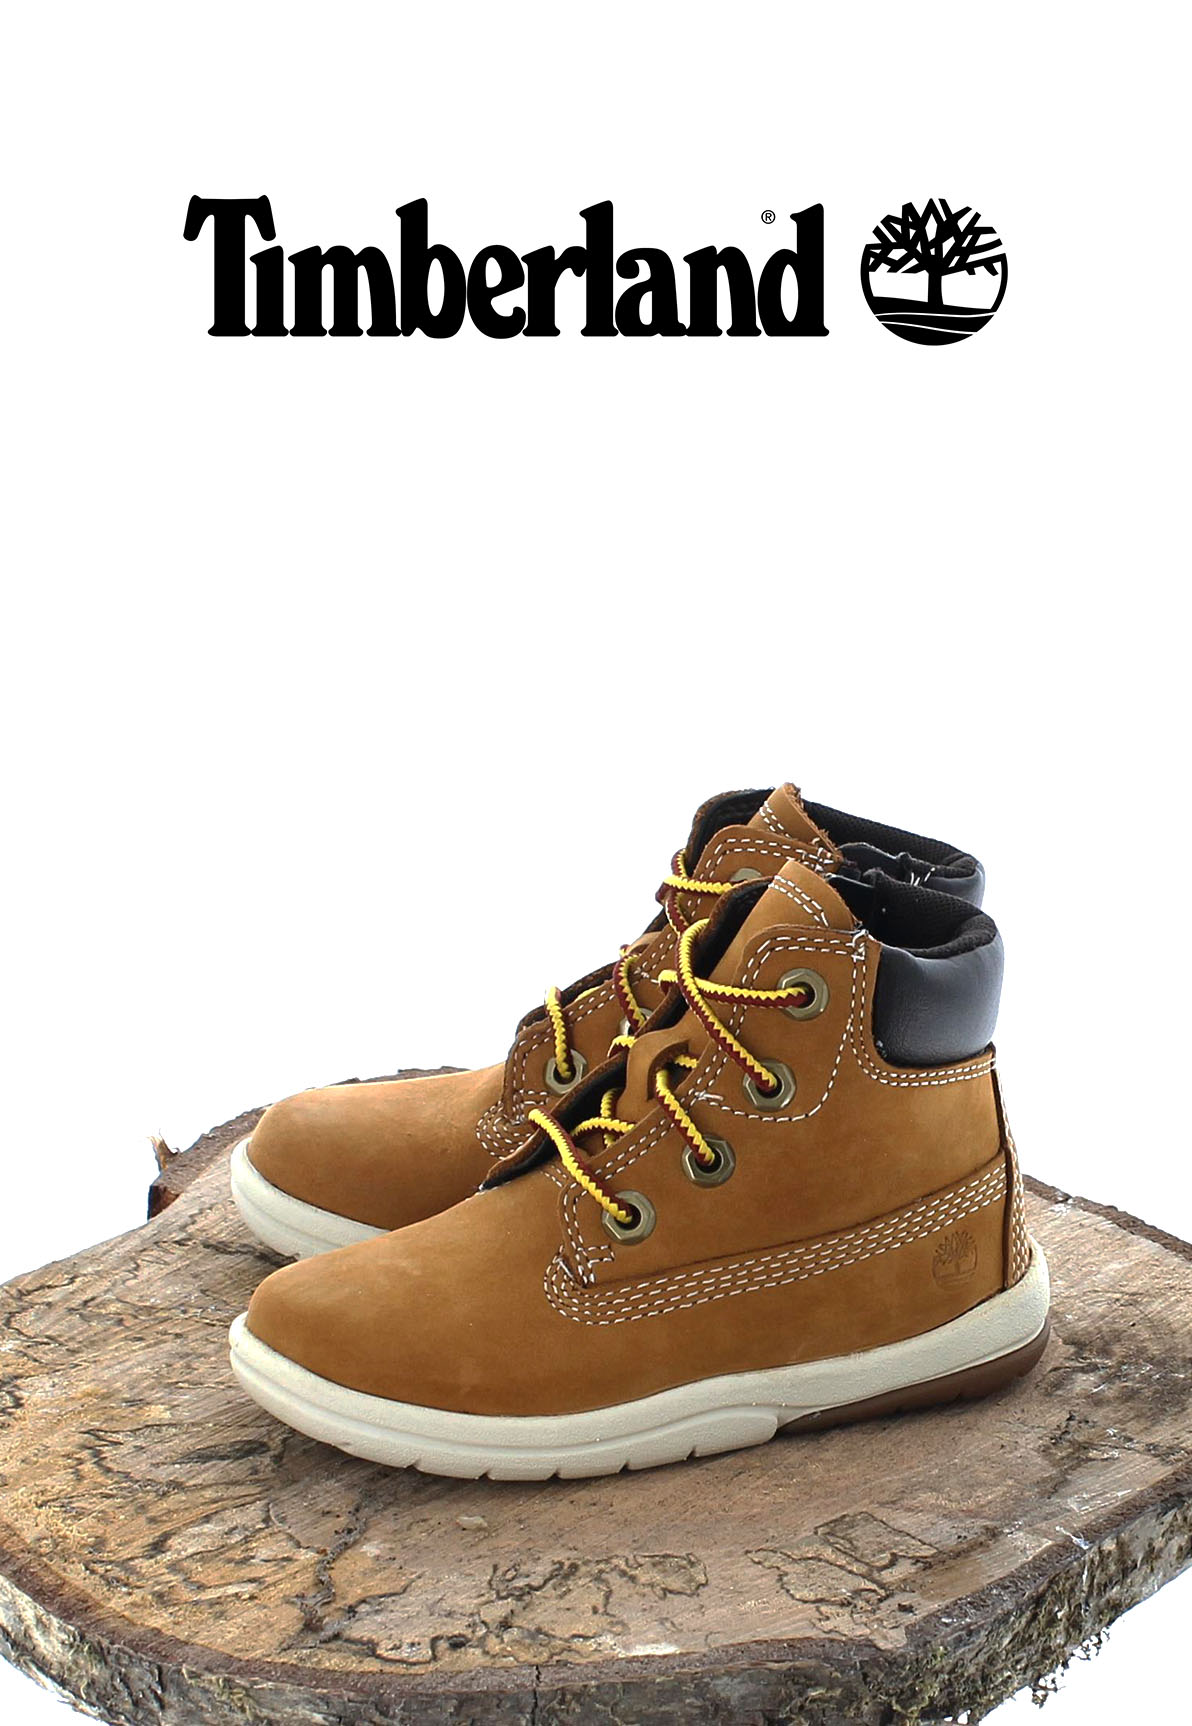 Hop, Skip & Jump into half term with Timberland